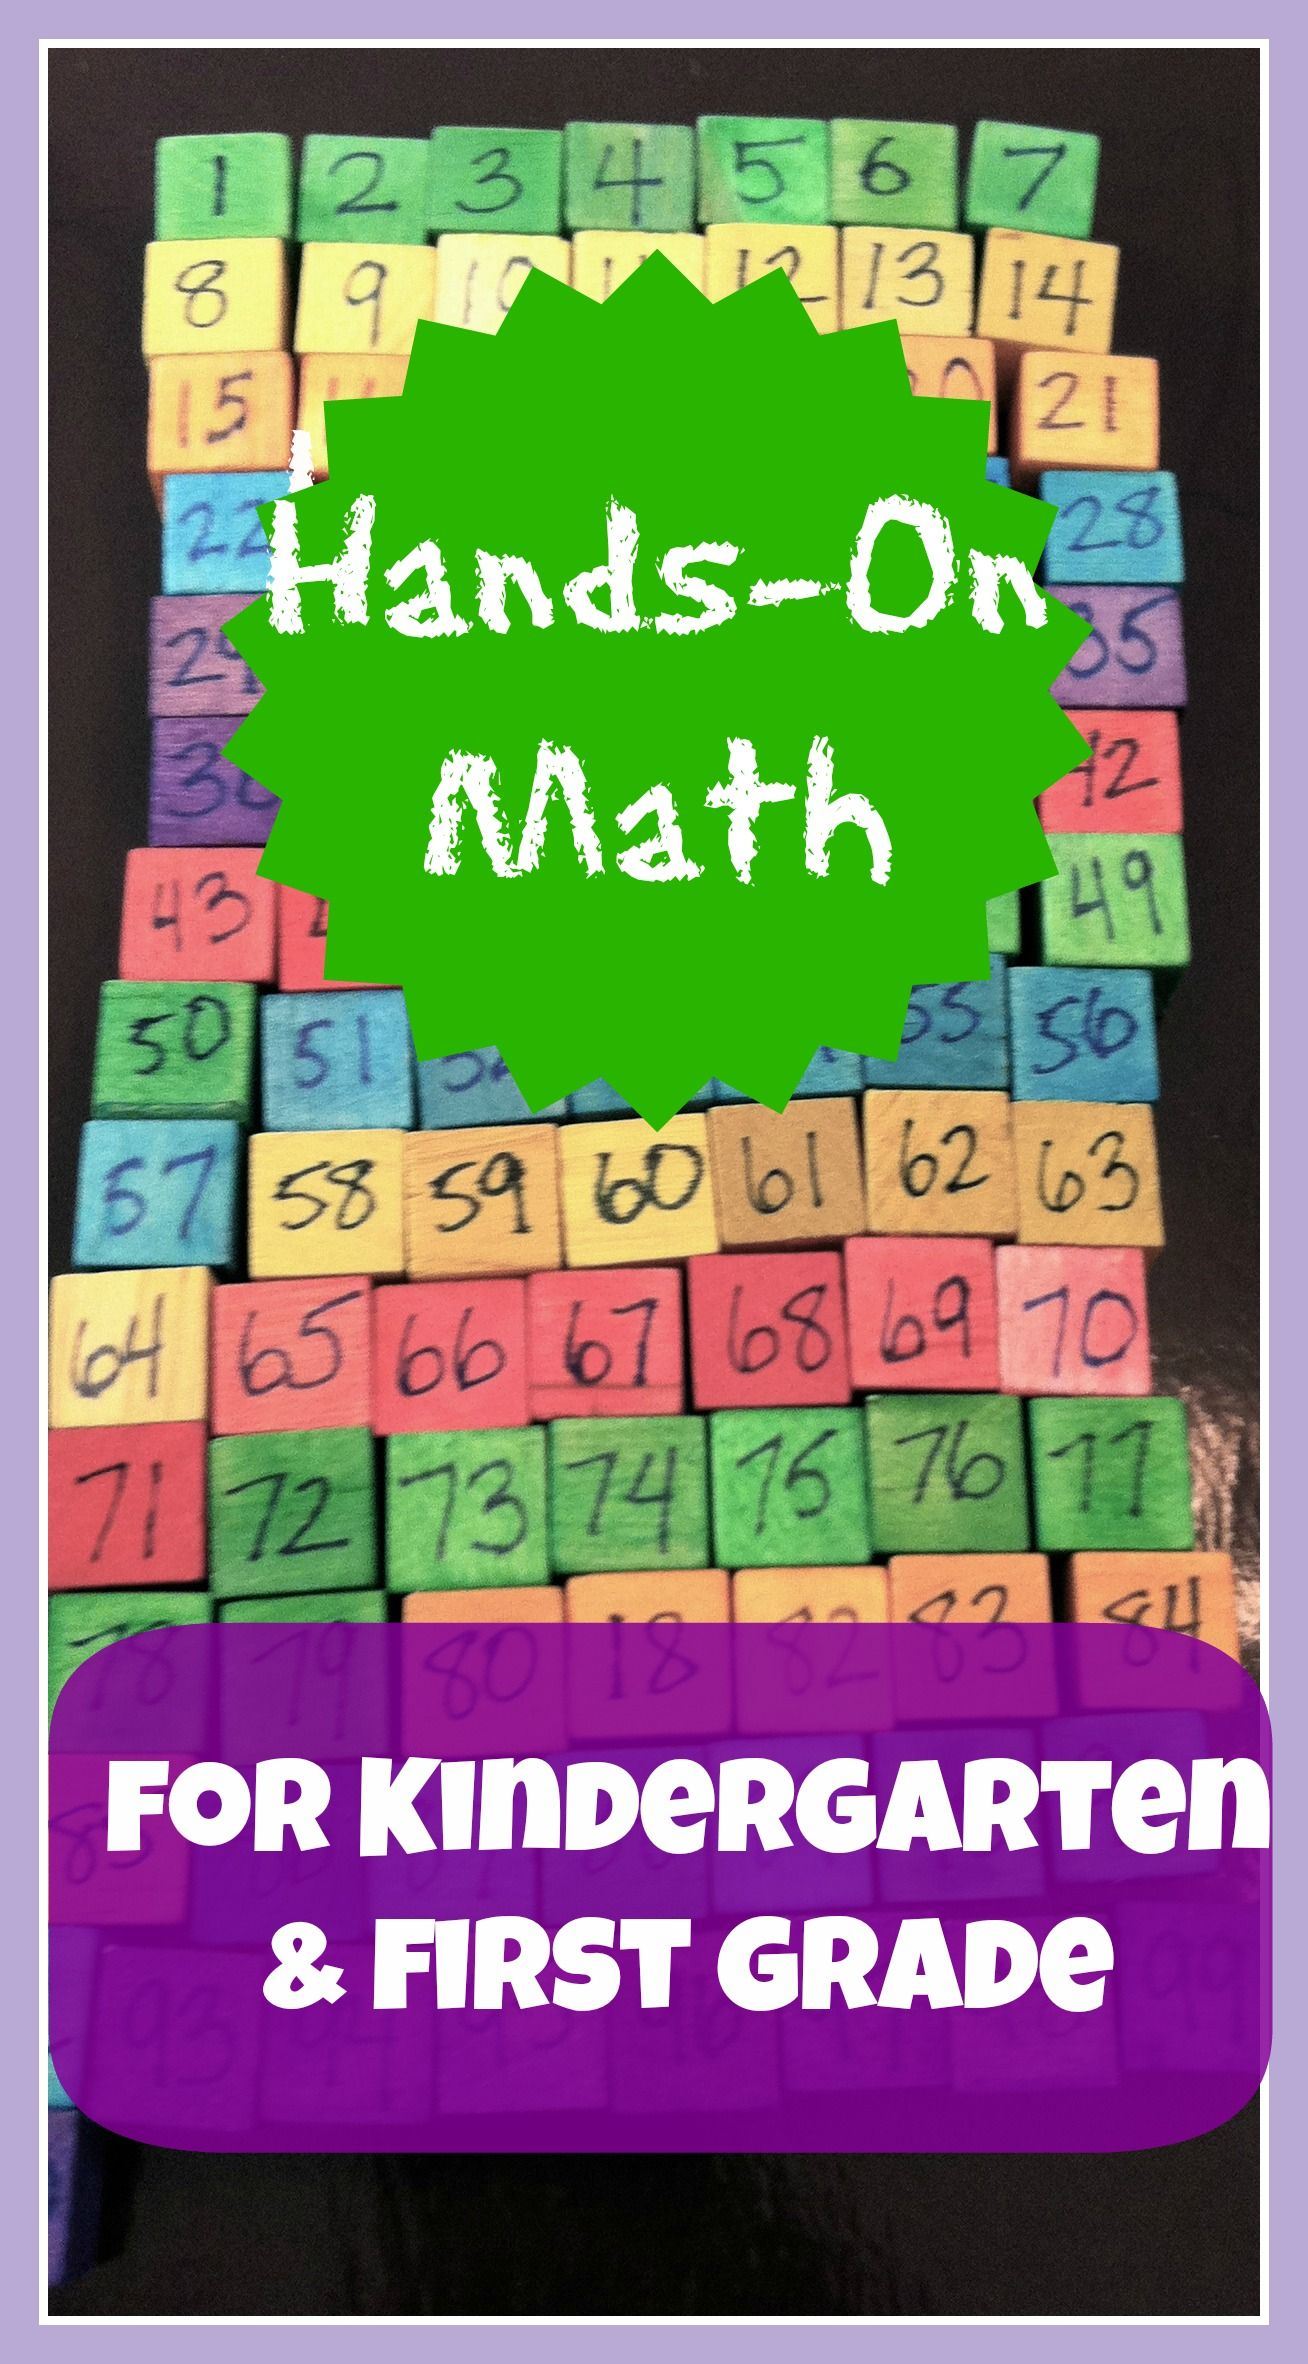 Hands-On Math Learning For Kindergarten and First Grade ...